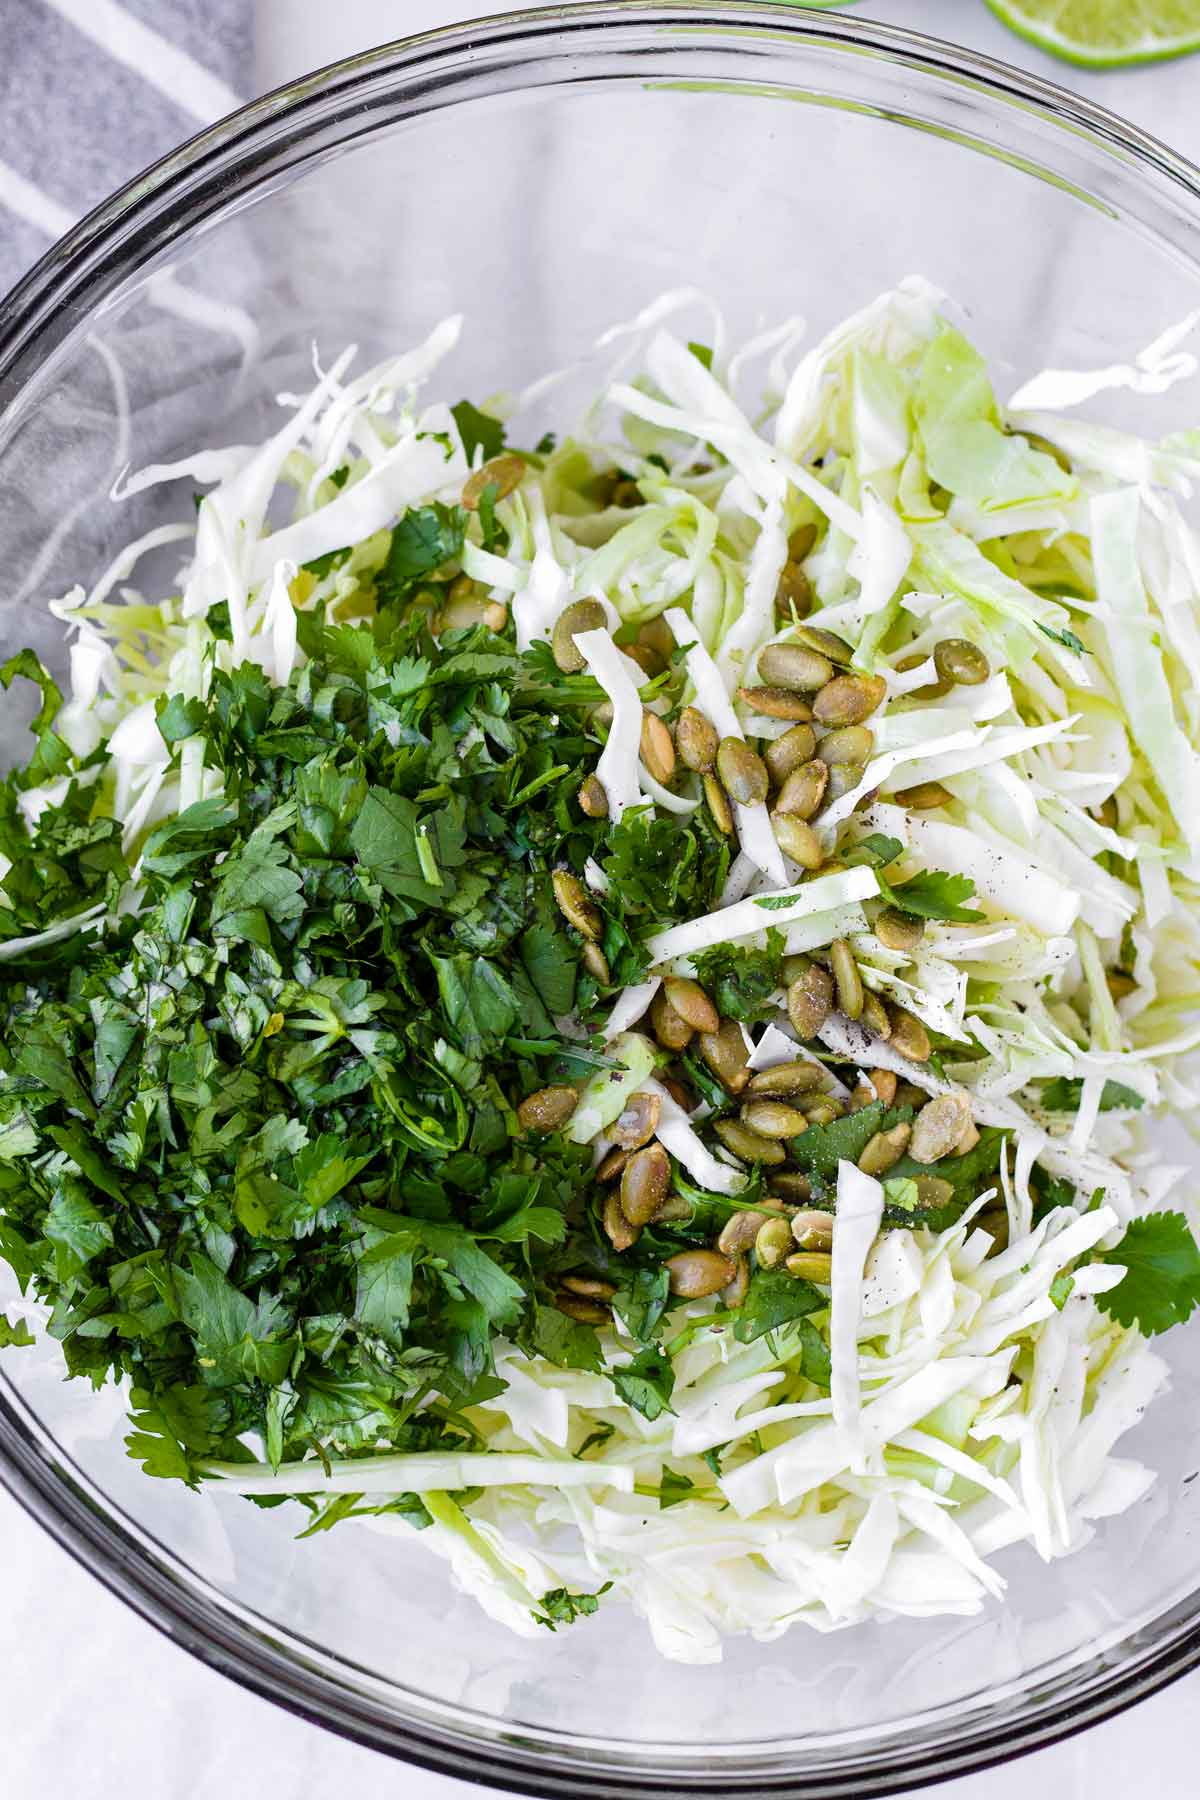 a glass bowl with cilantro, green cabbage, pumpkin seeds